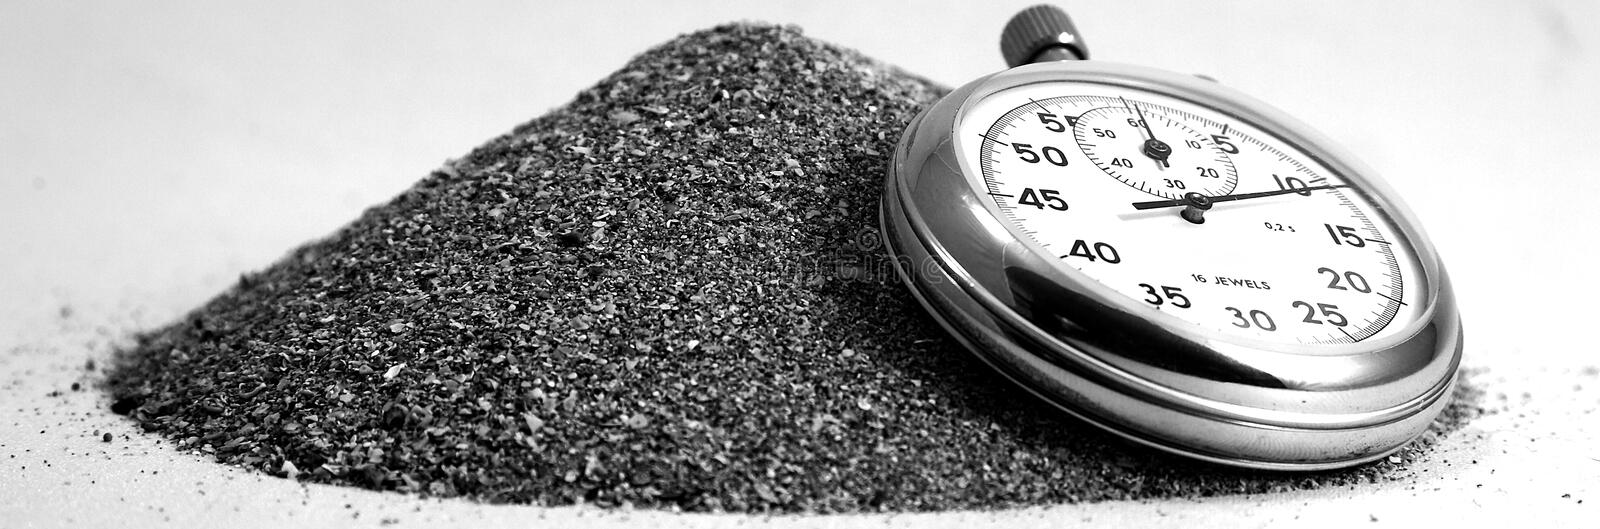 Download Time is sand stock image. Image of finish, number, silver - 16406457